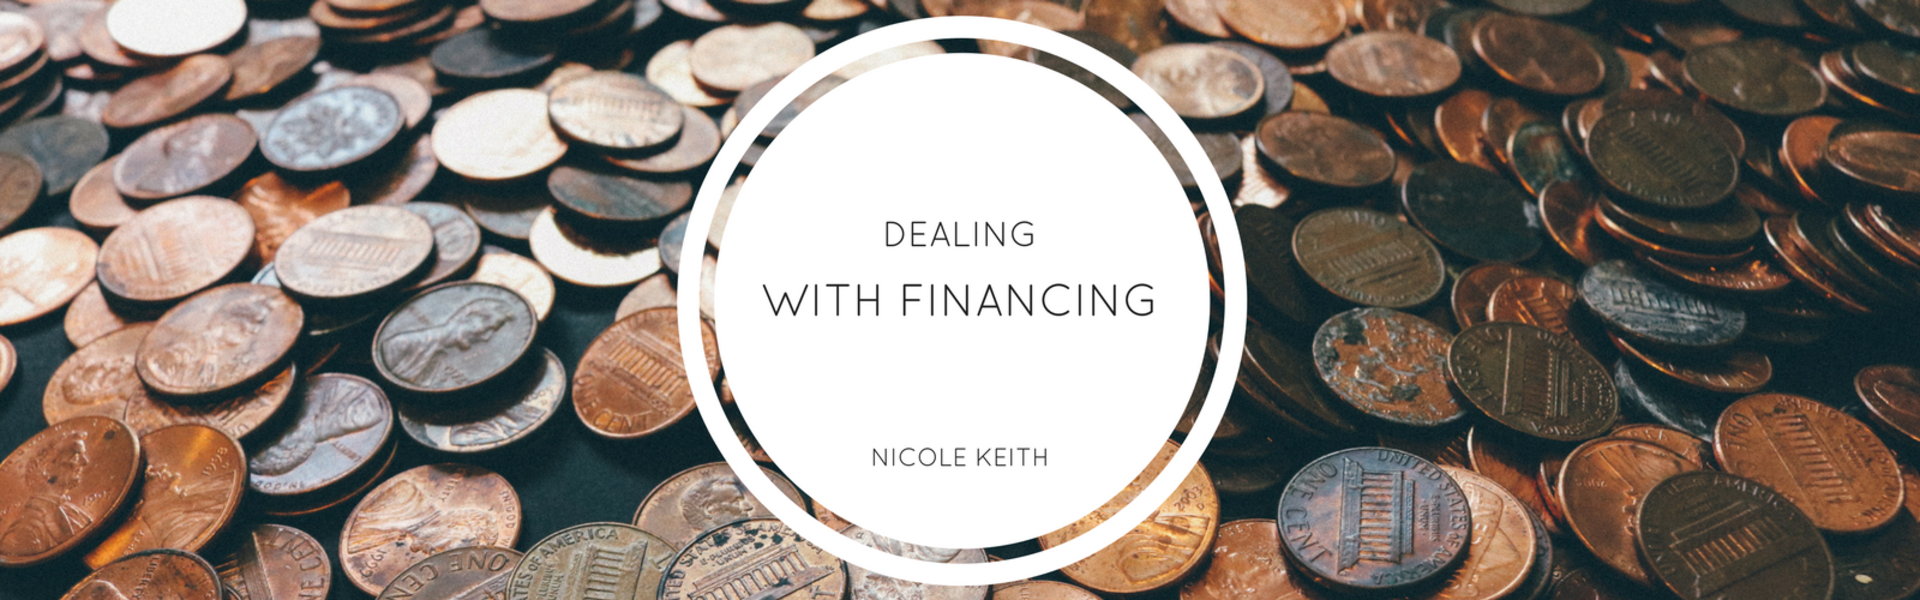 Dealing with Financing